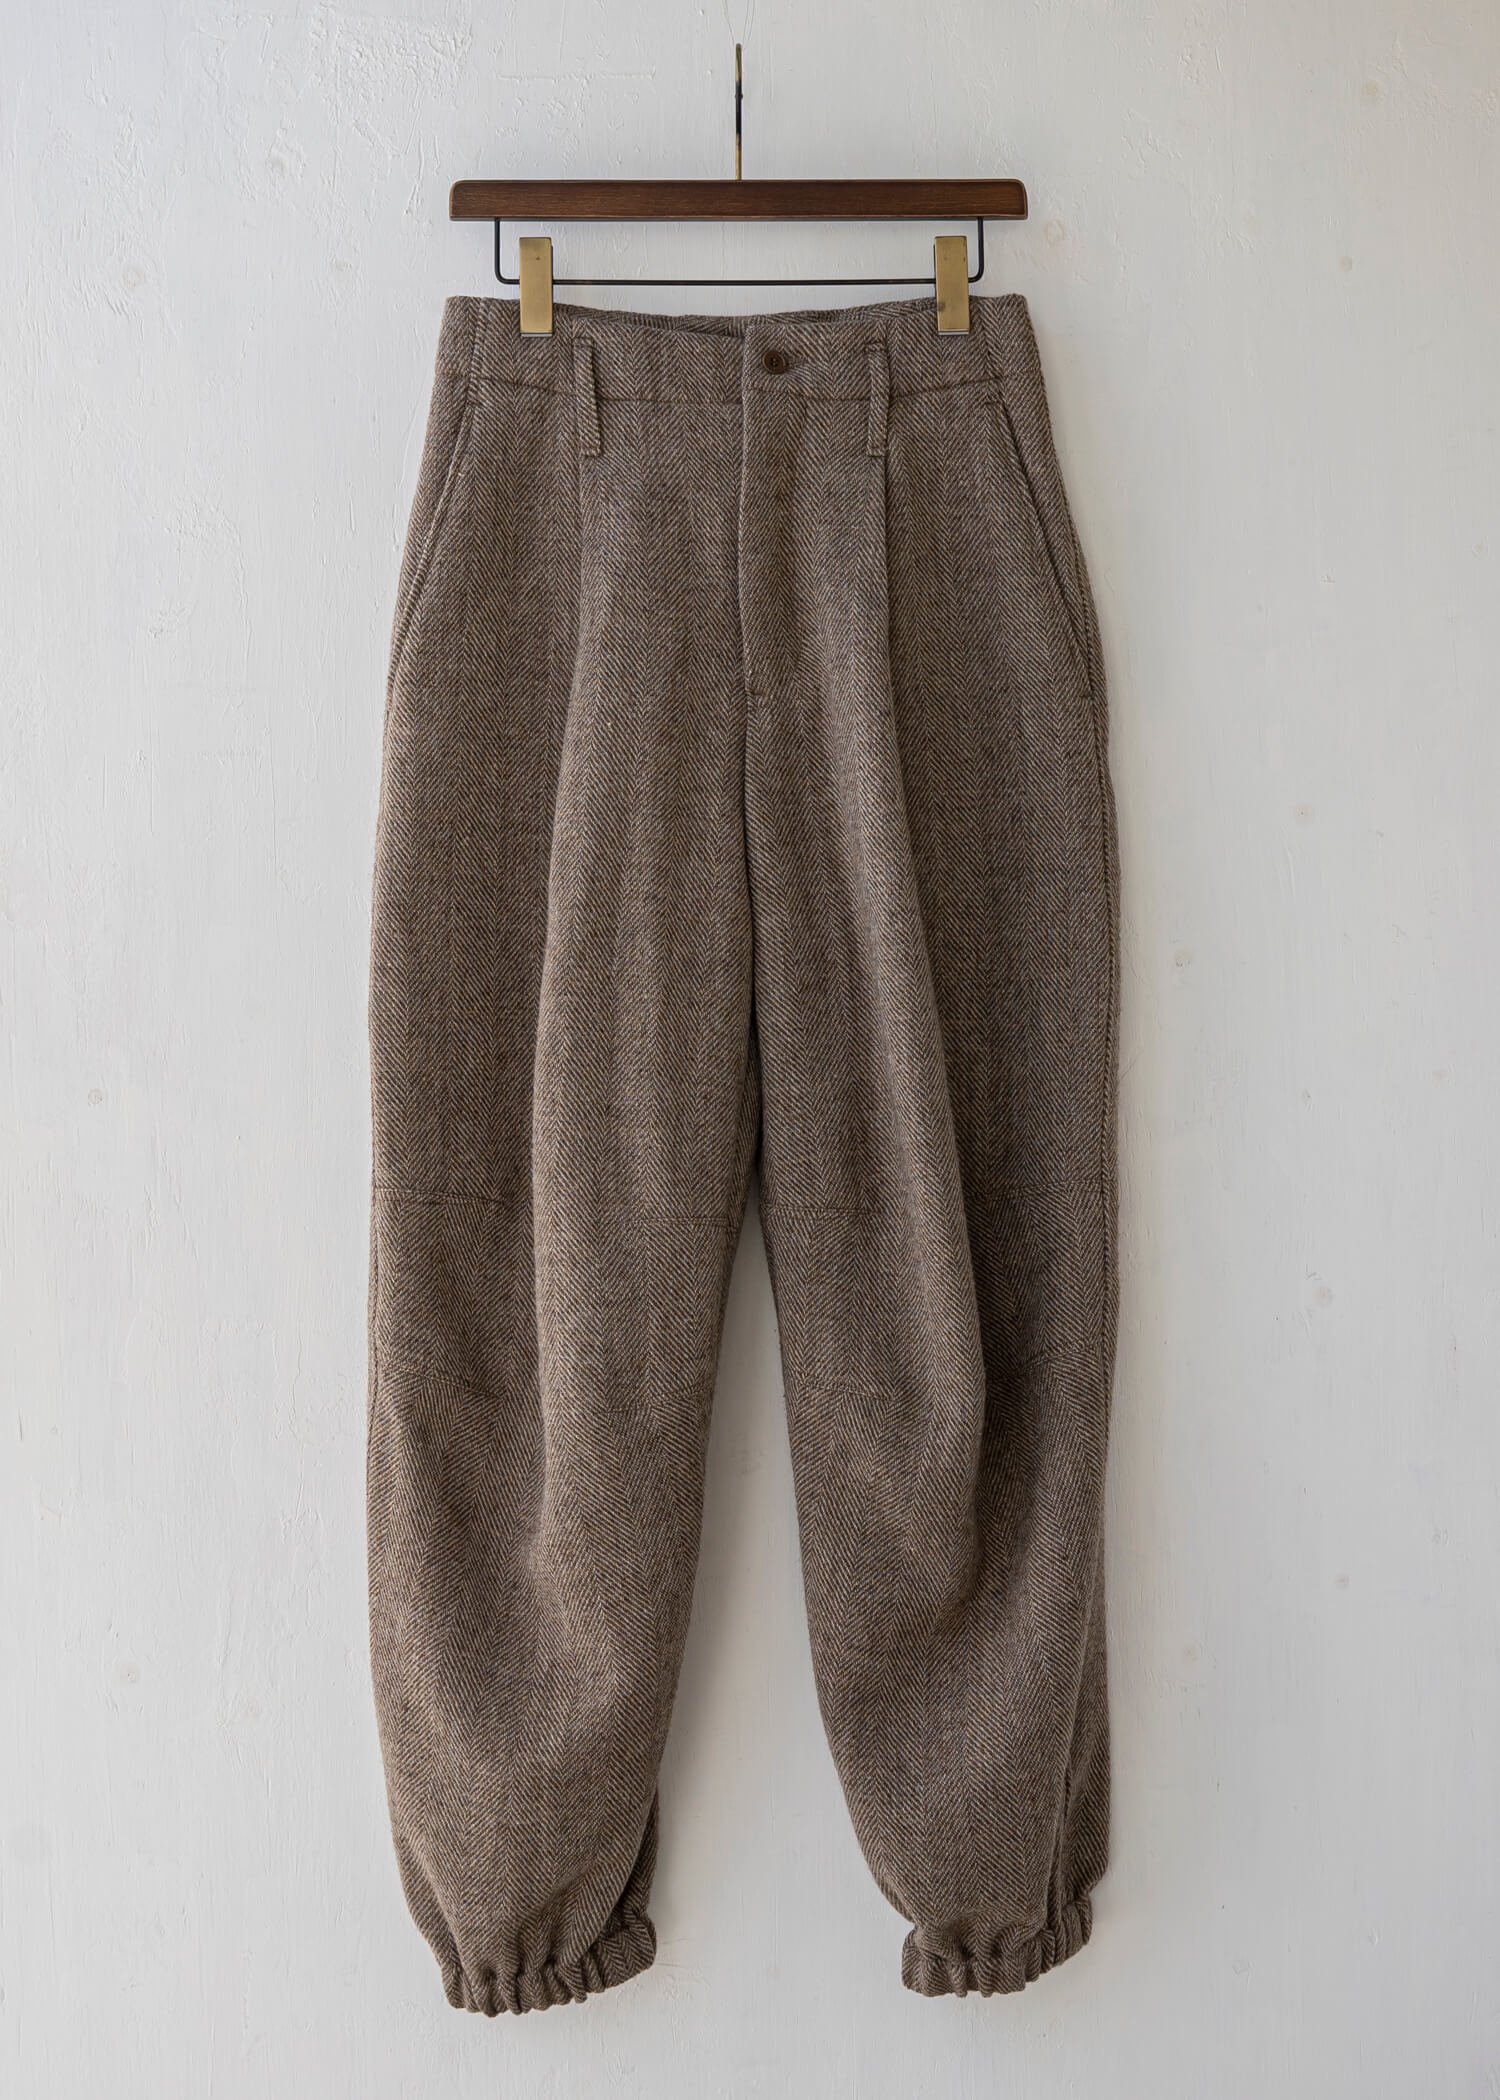 HED MAYNER / CARGO PANT